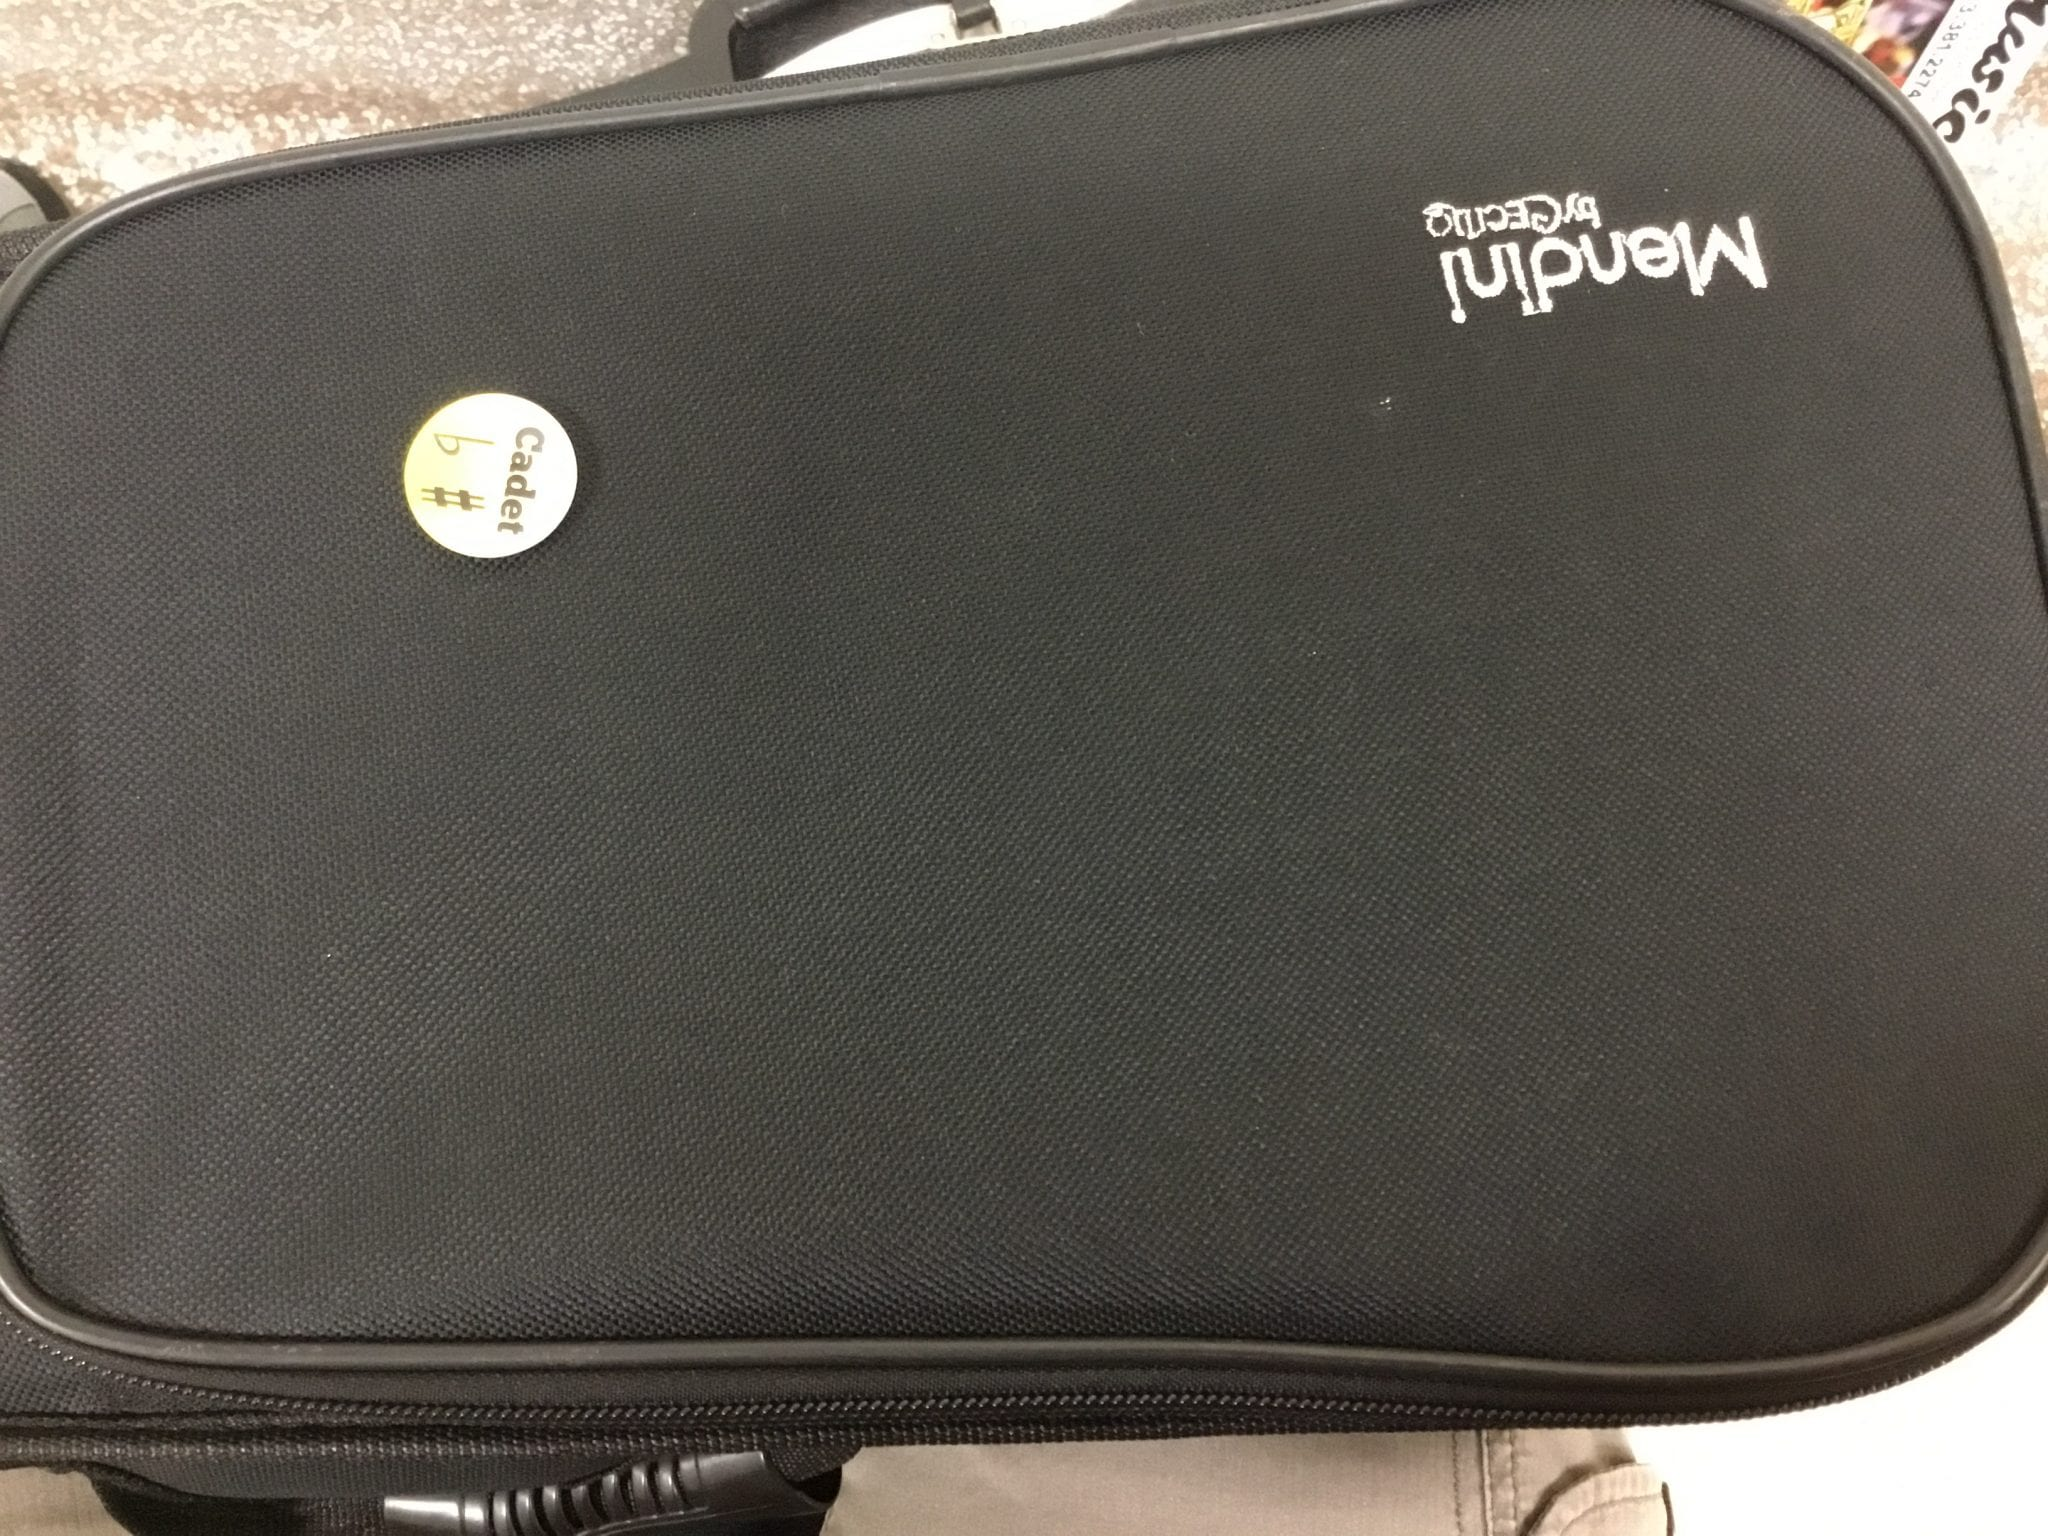 A proud student displays the earned cadet pin on his or her instrument case.